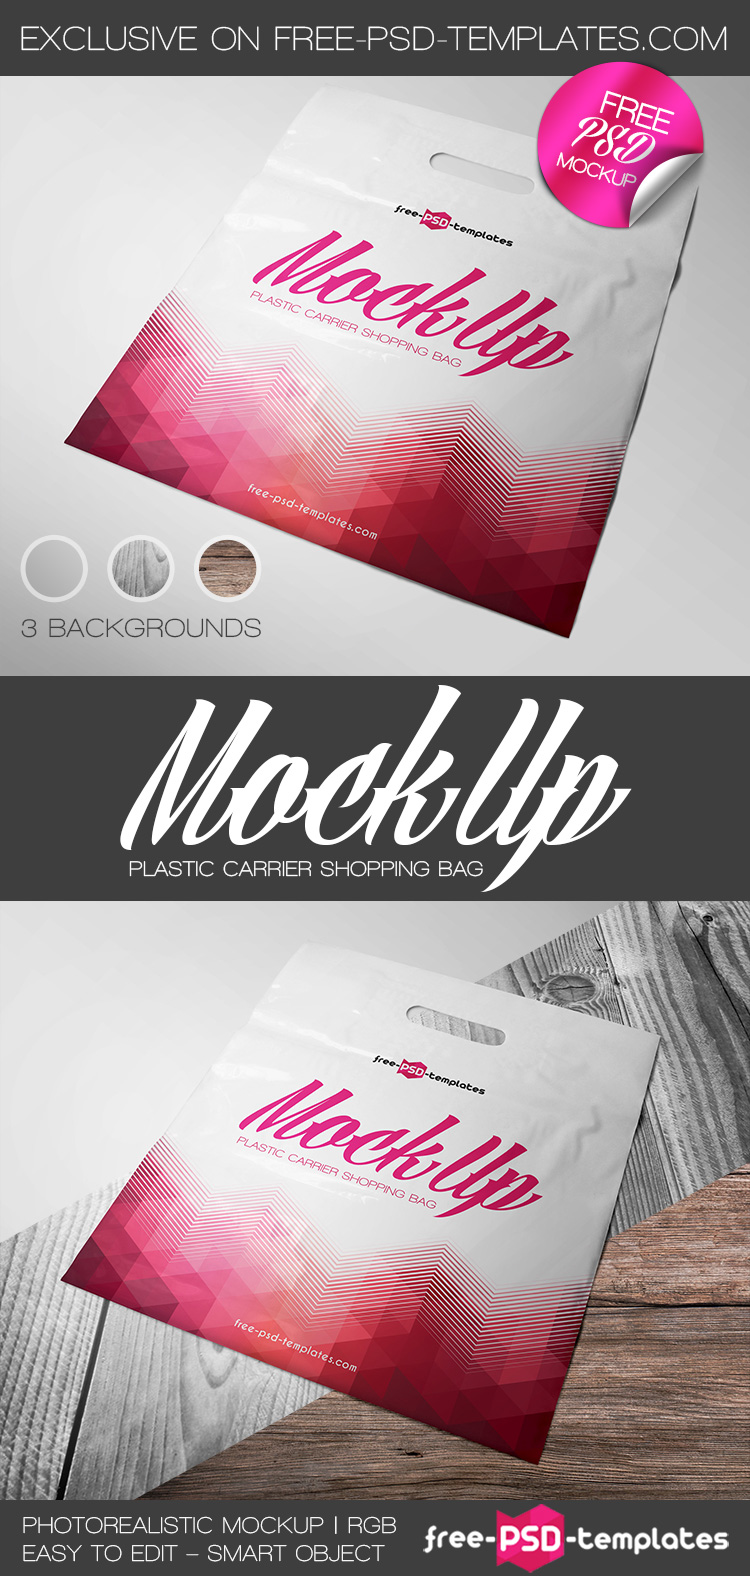 Bigpreview_free-plastic-carrier-shopping-bag-mock-up-in-psd